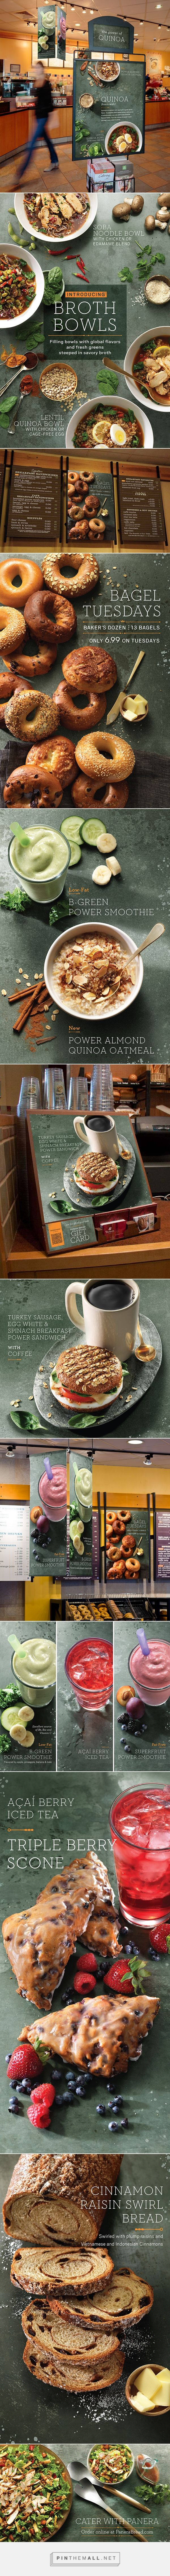 New Year at Panera on Behance - created via https://pinthemall.net